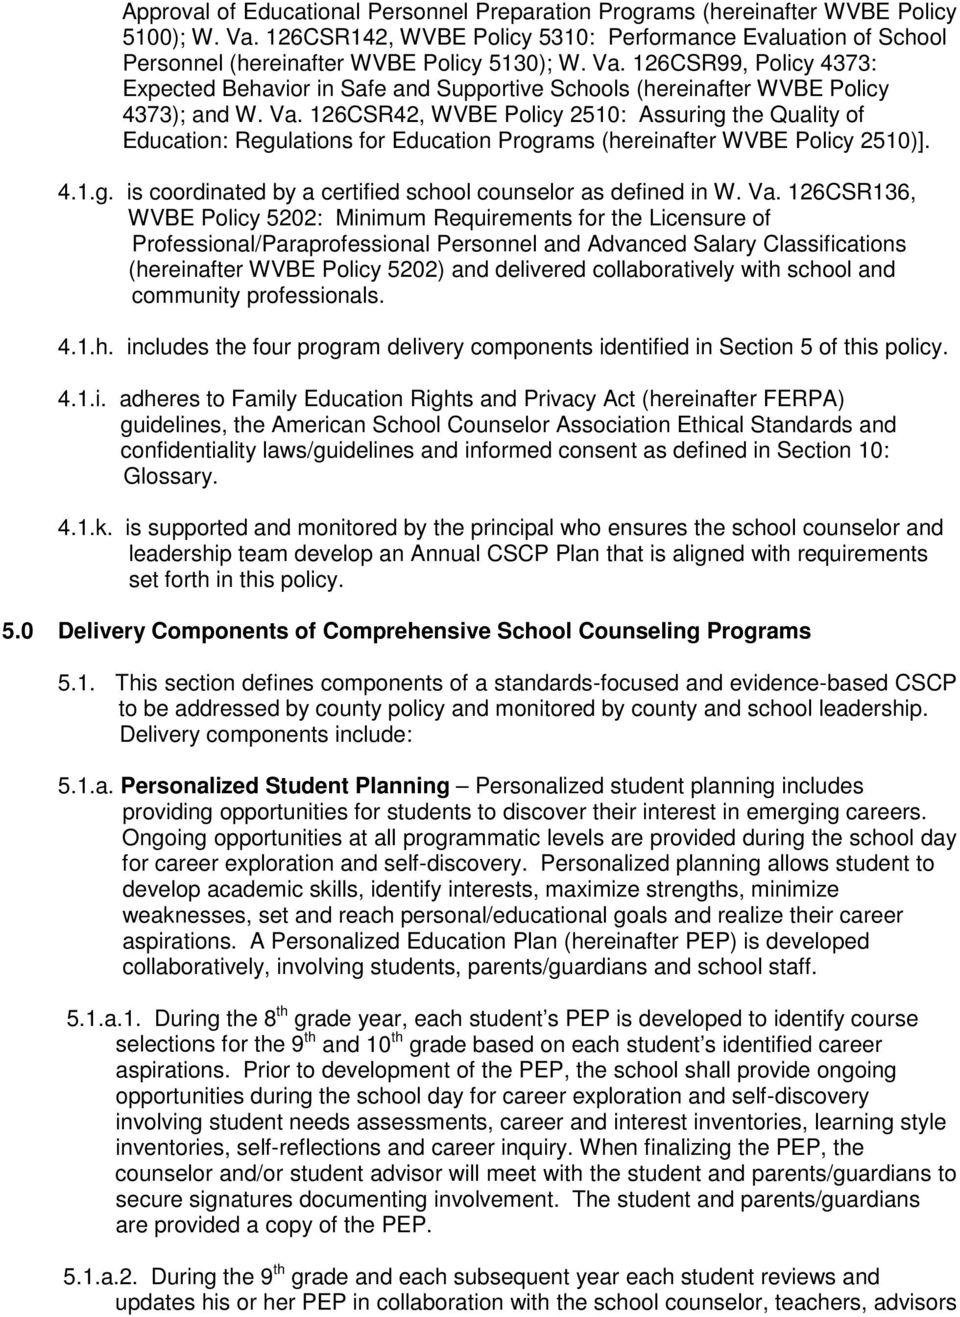 126CSR42, WVBE Policy 2510: Assuring the Quality of Education: Regulations for Education Programs (hereinafter WVBE Policy 2510)]. 4.1.g. is coordinated by a certified school counselor as defined in W.